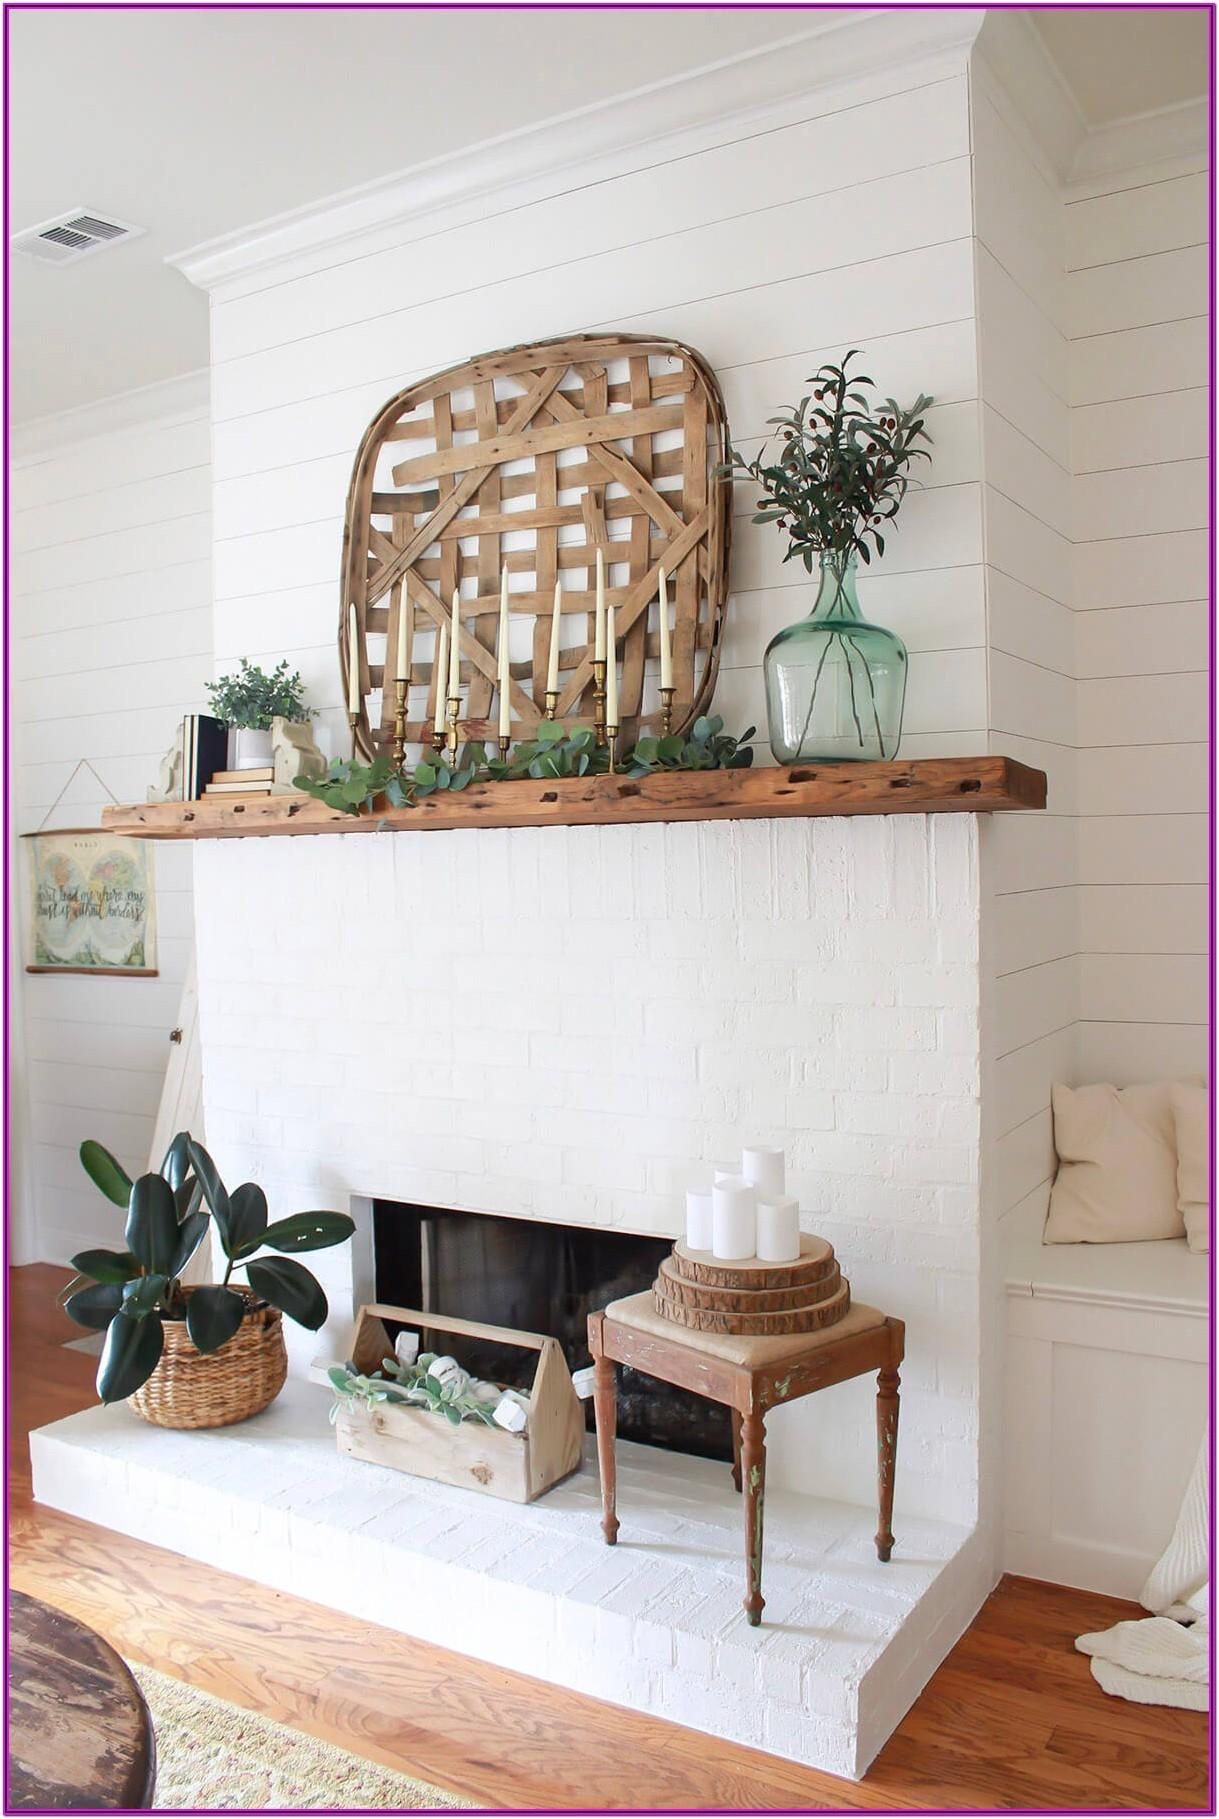 Living Room Basket Decor Ideas